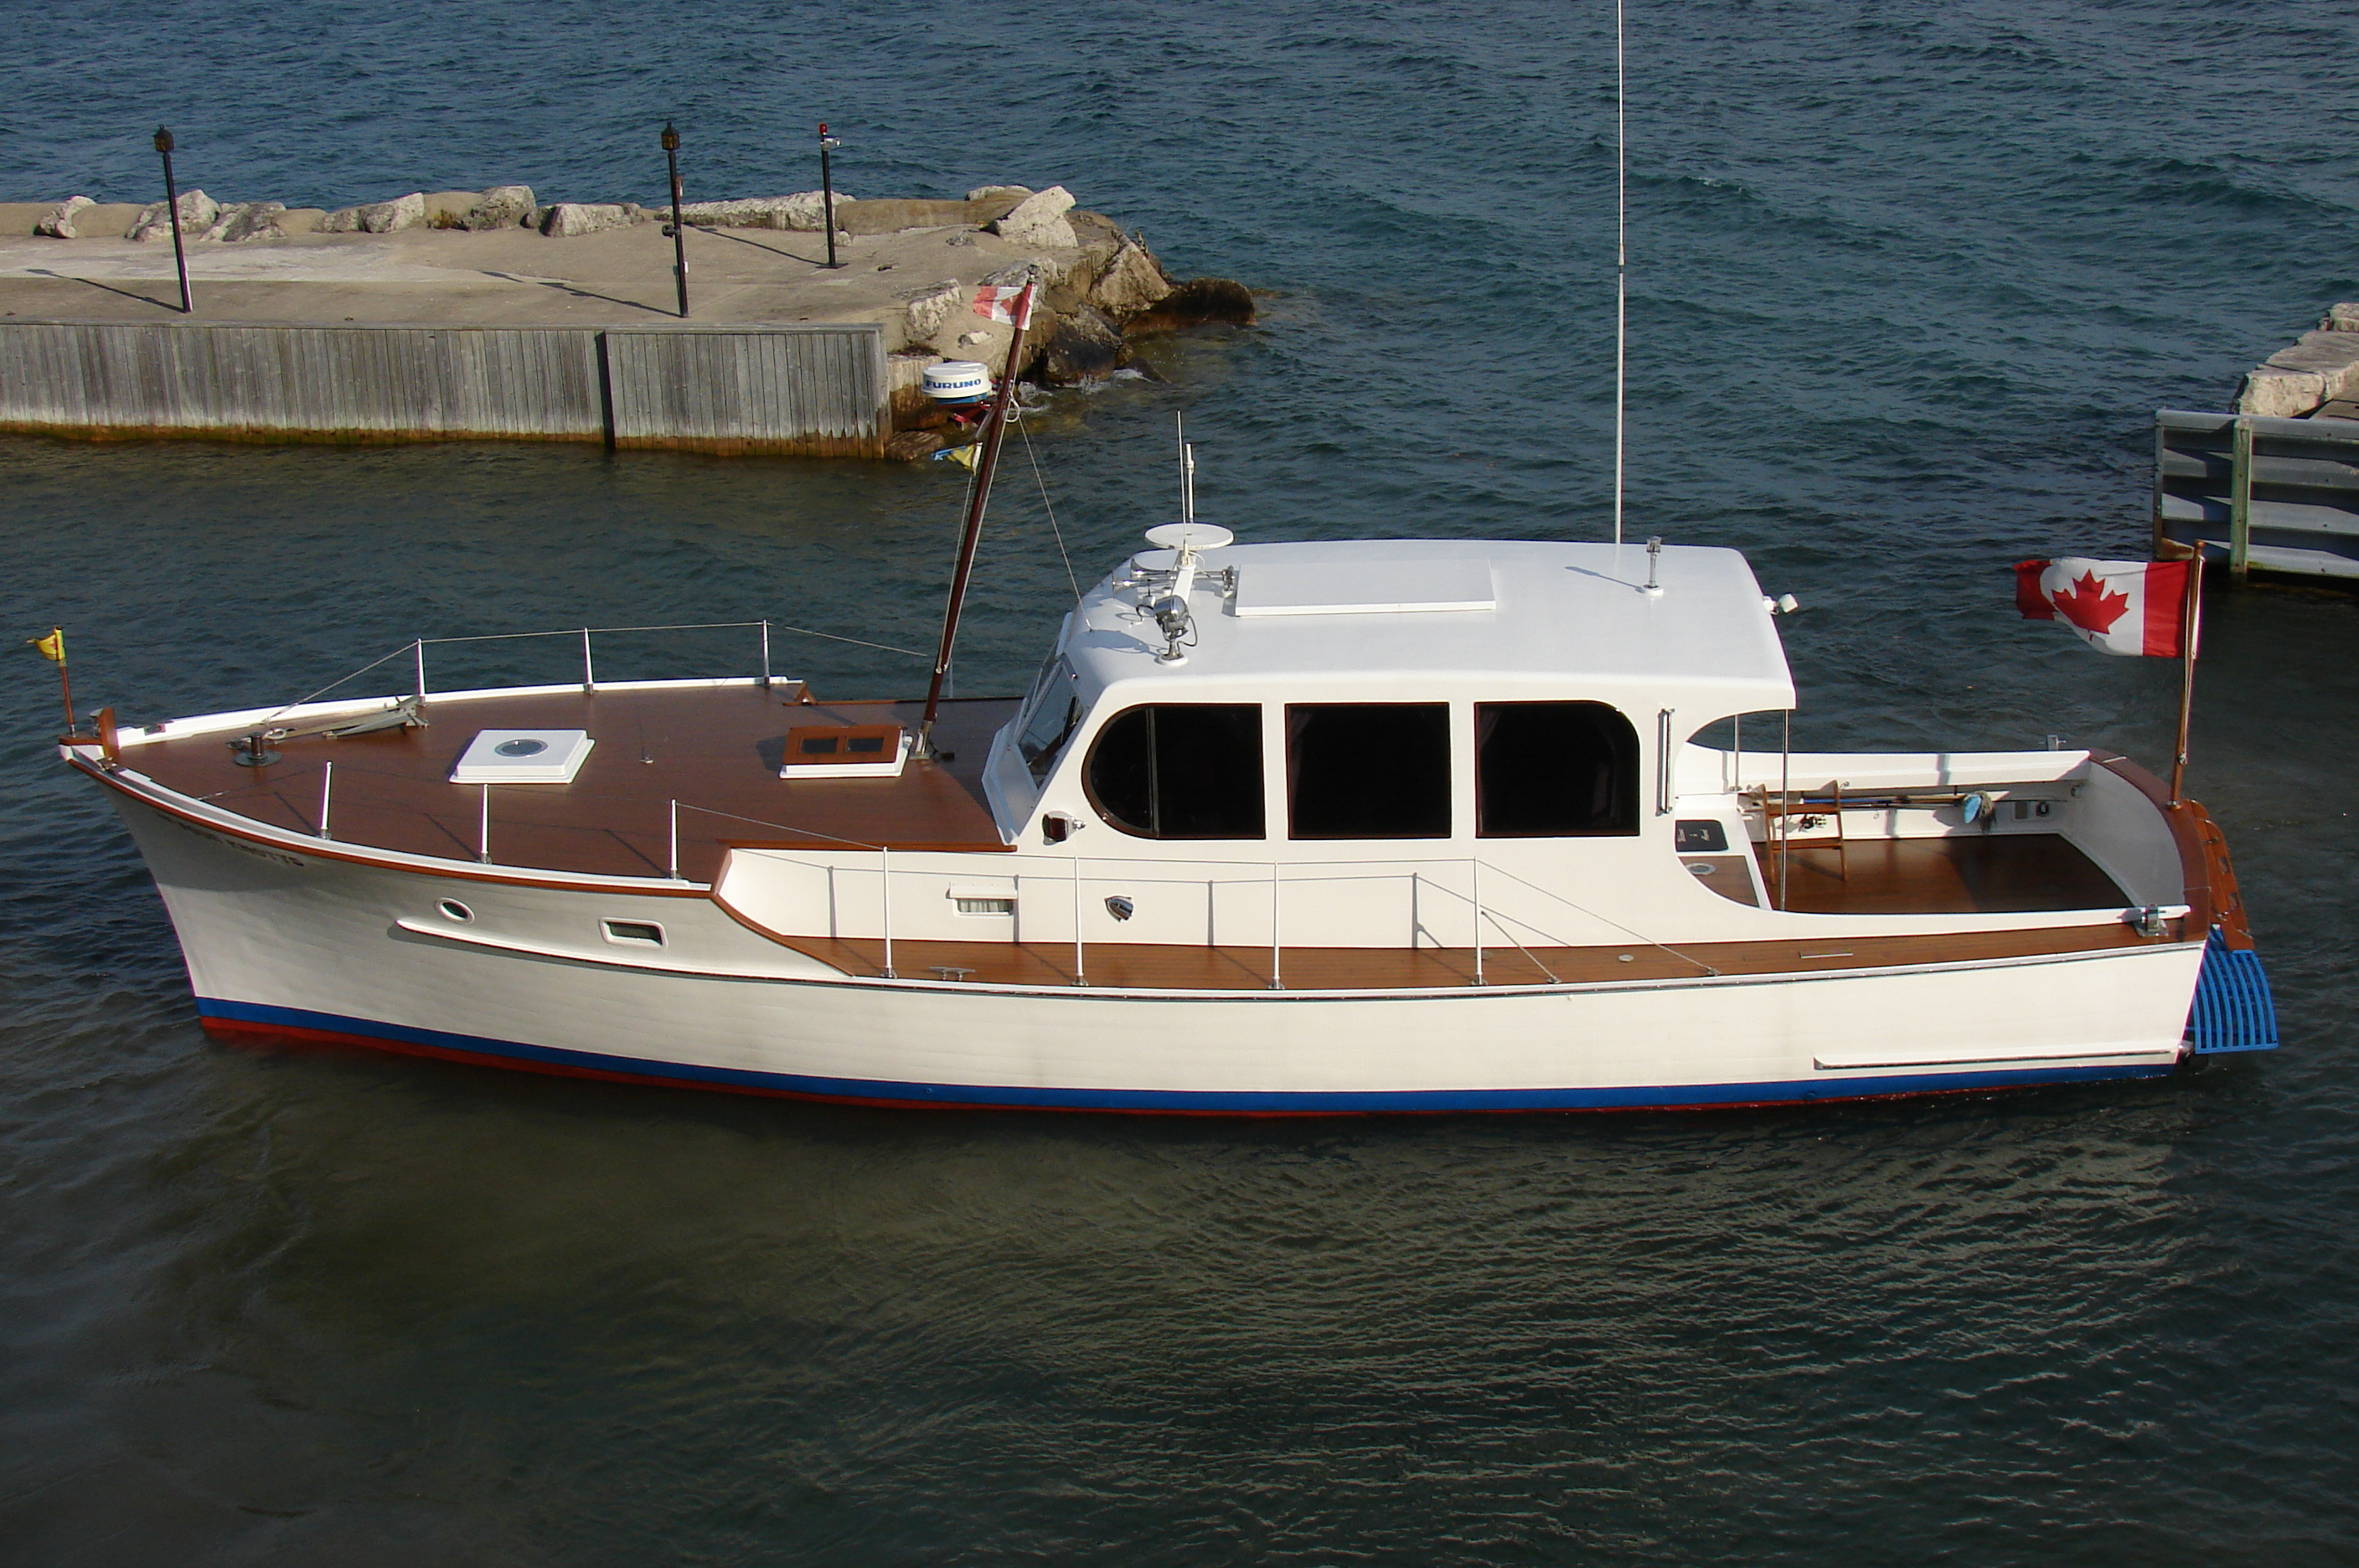 44 ft cabin cruiser – $205,000 (negotiable)